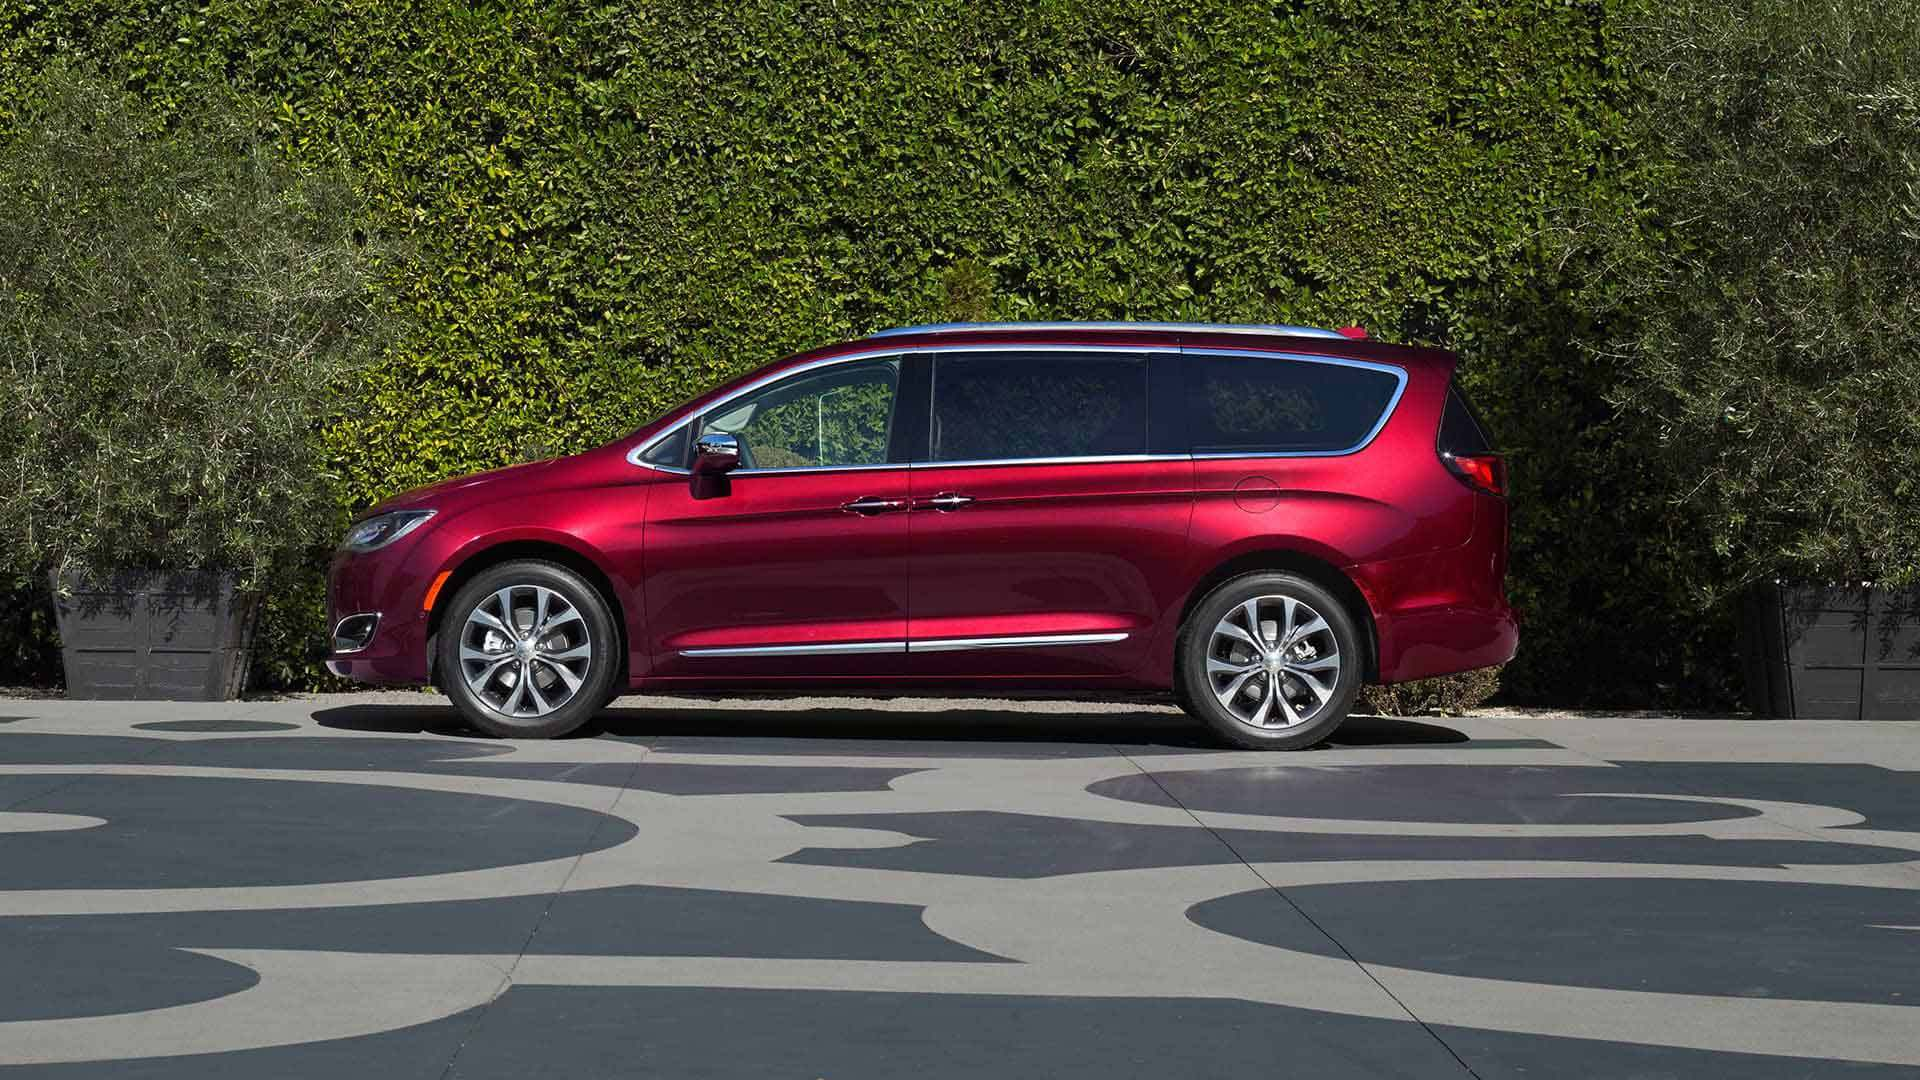 New Chrysler Pacifica Exterior image 2